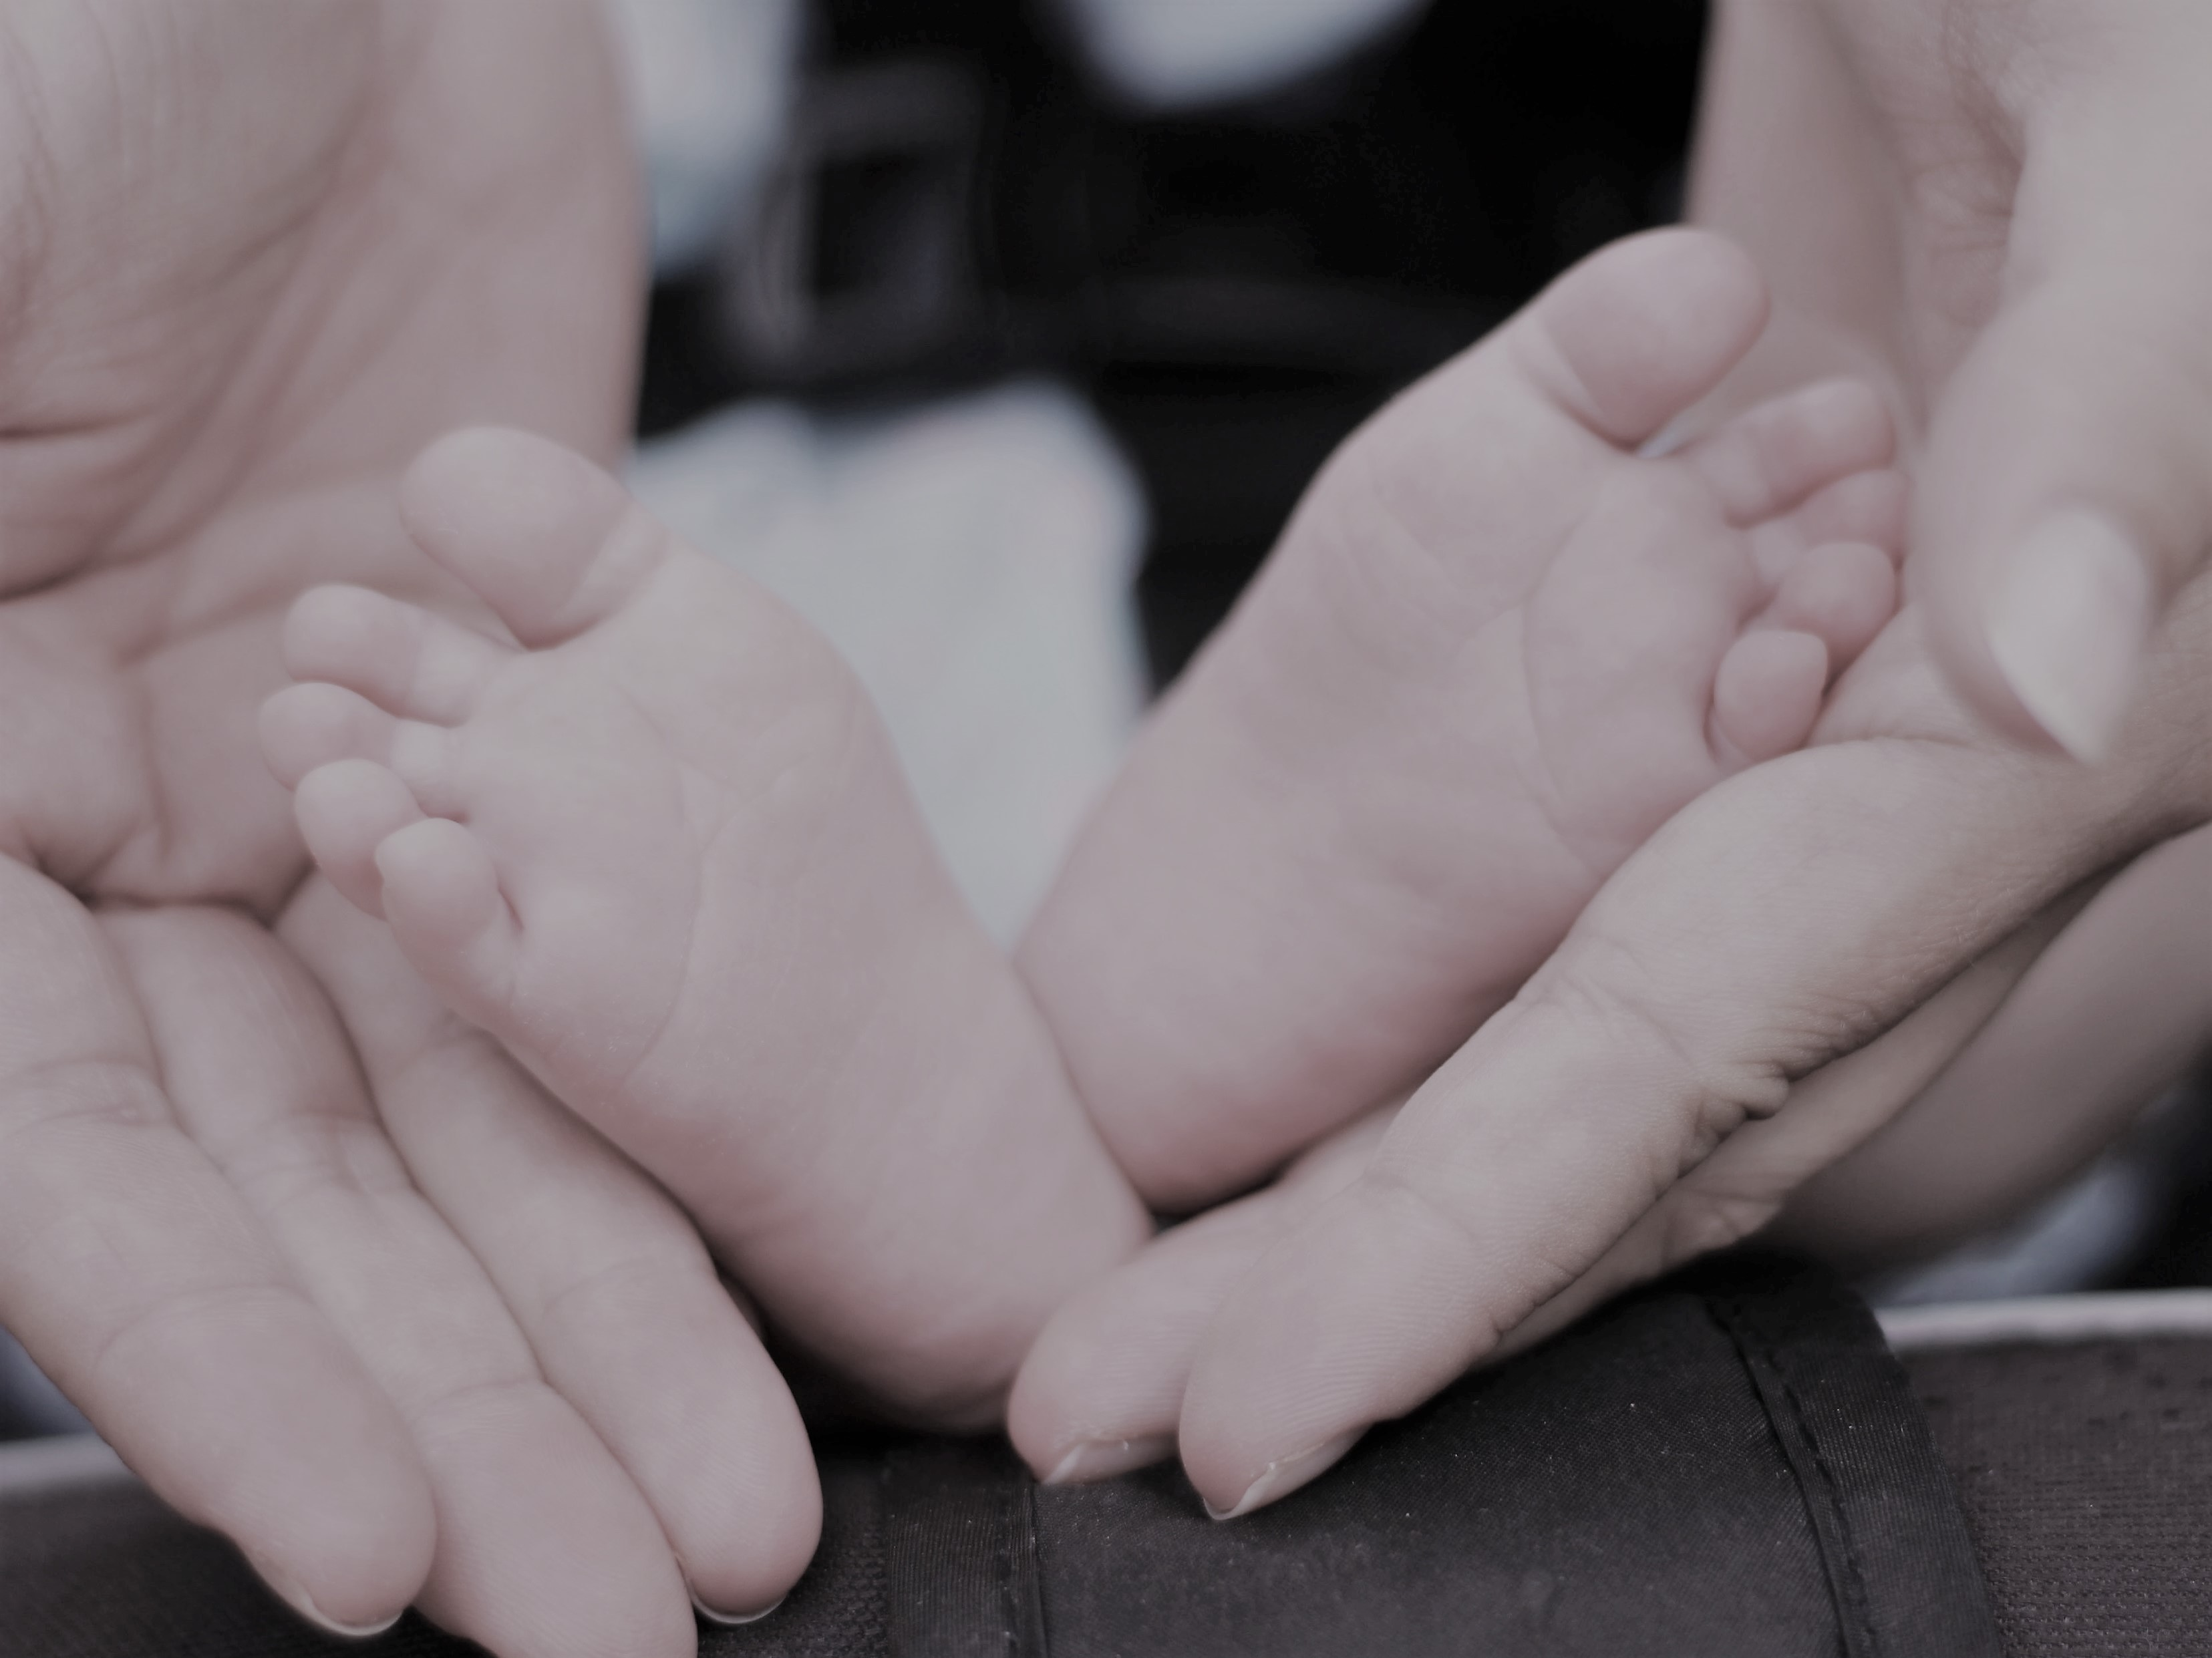 Image of adult hands holding baby feet